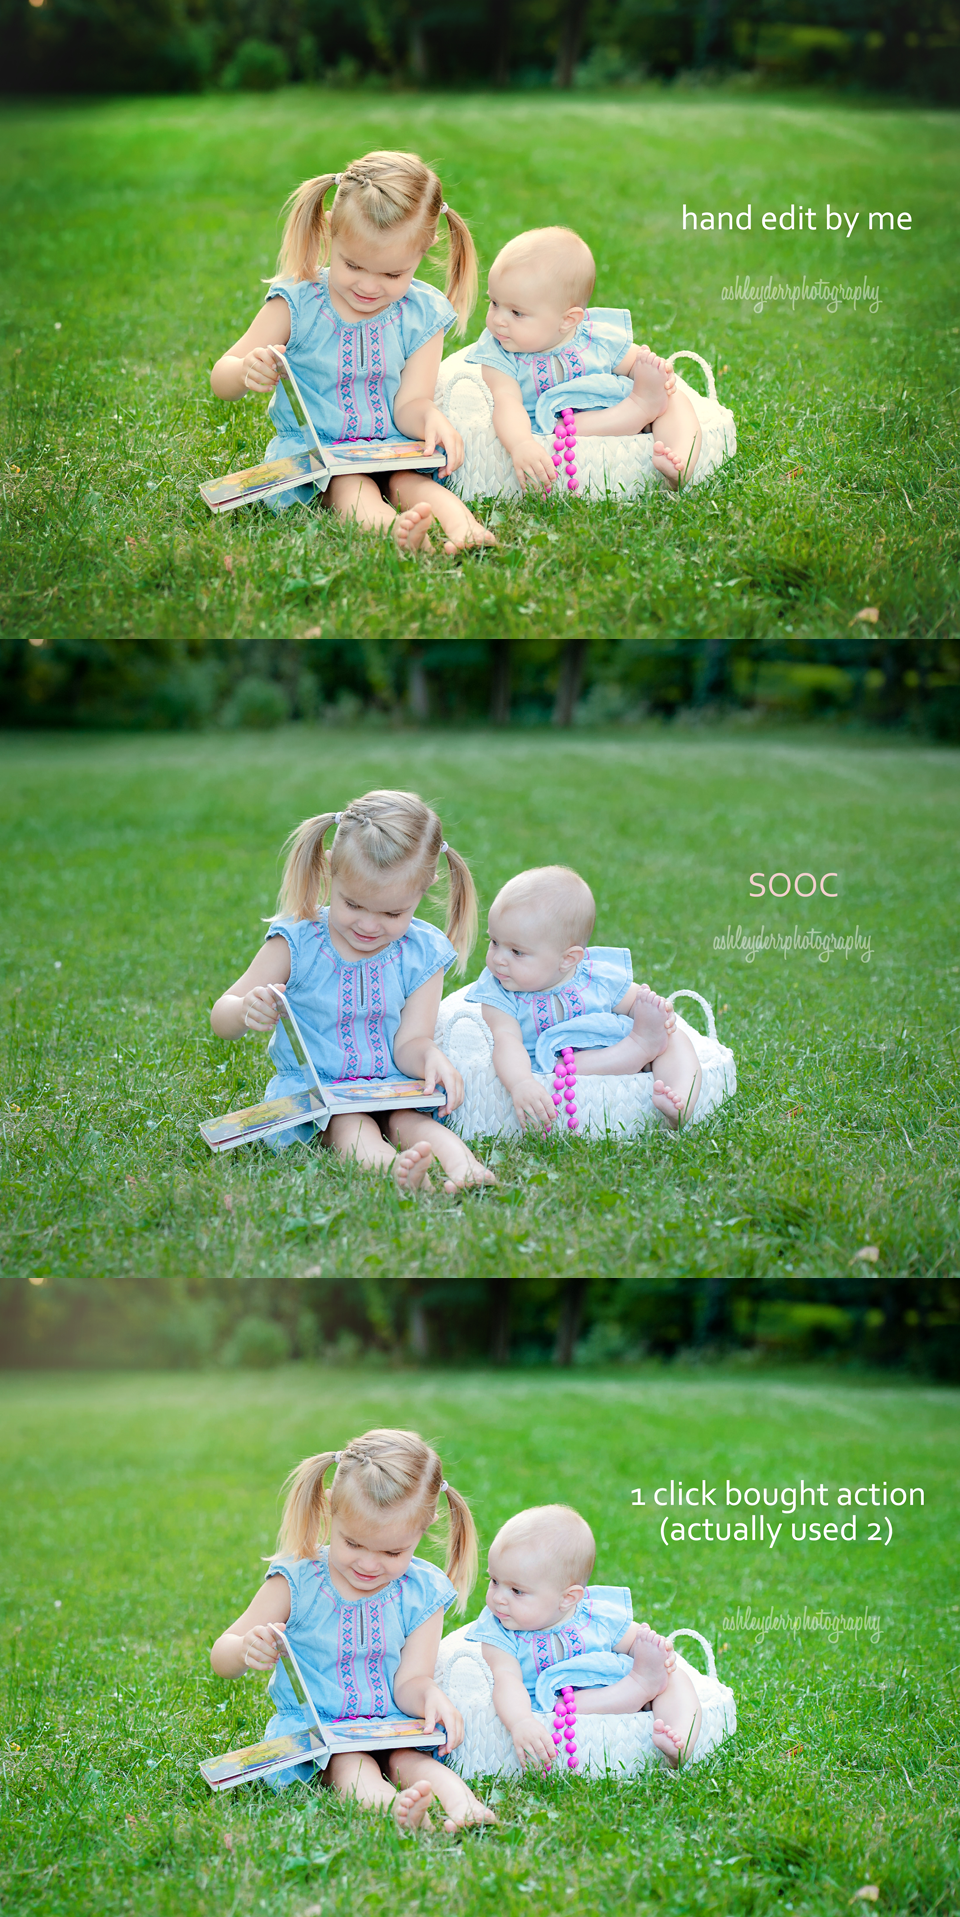 hand editing versus store bought actions pittsburgh photographer